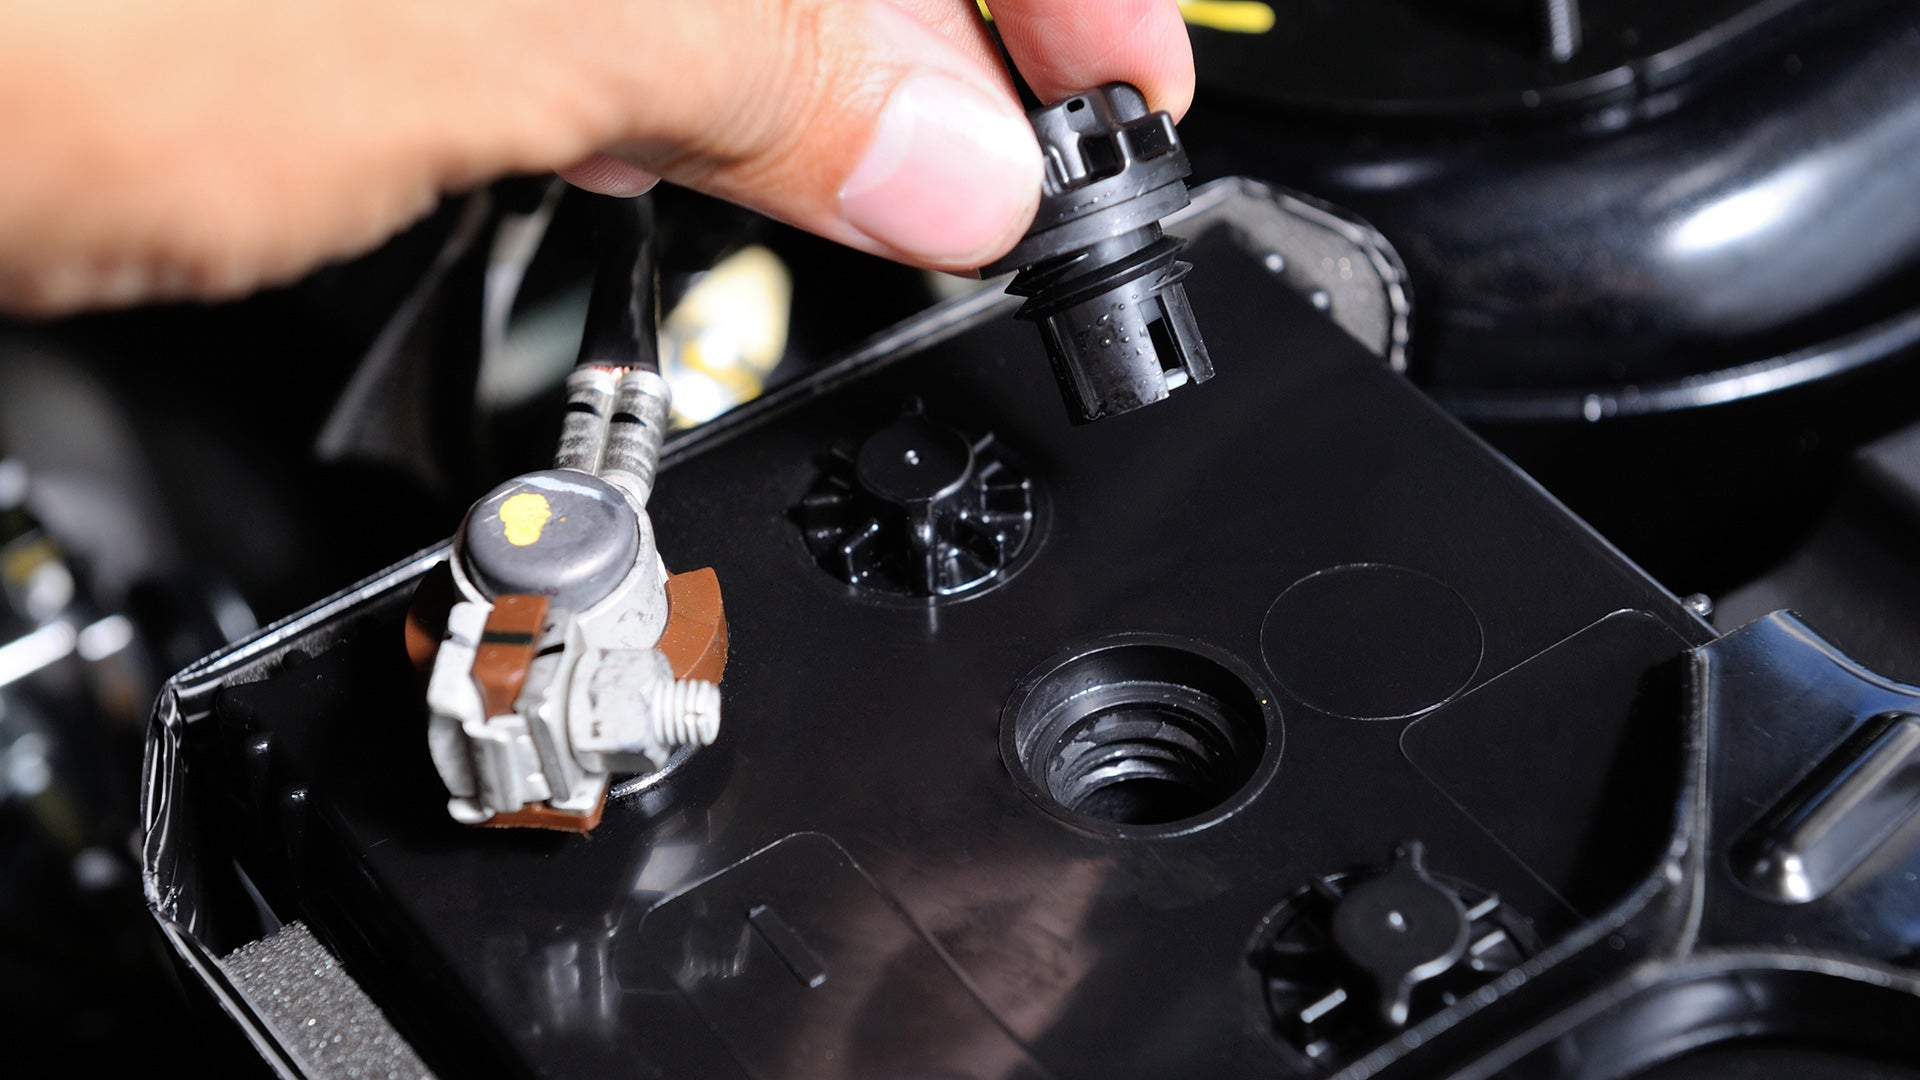 Opening the cap of a car battery to recondition it.